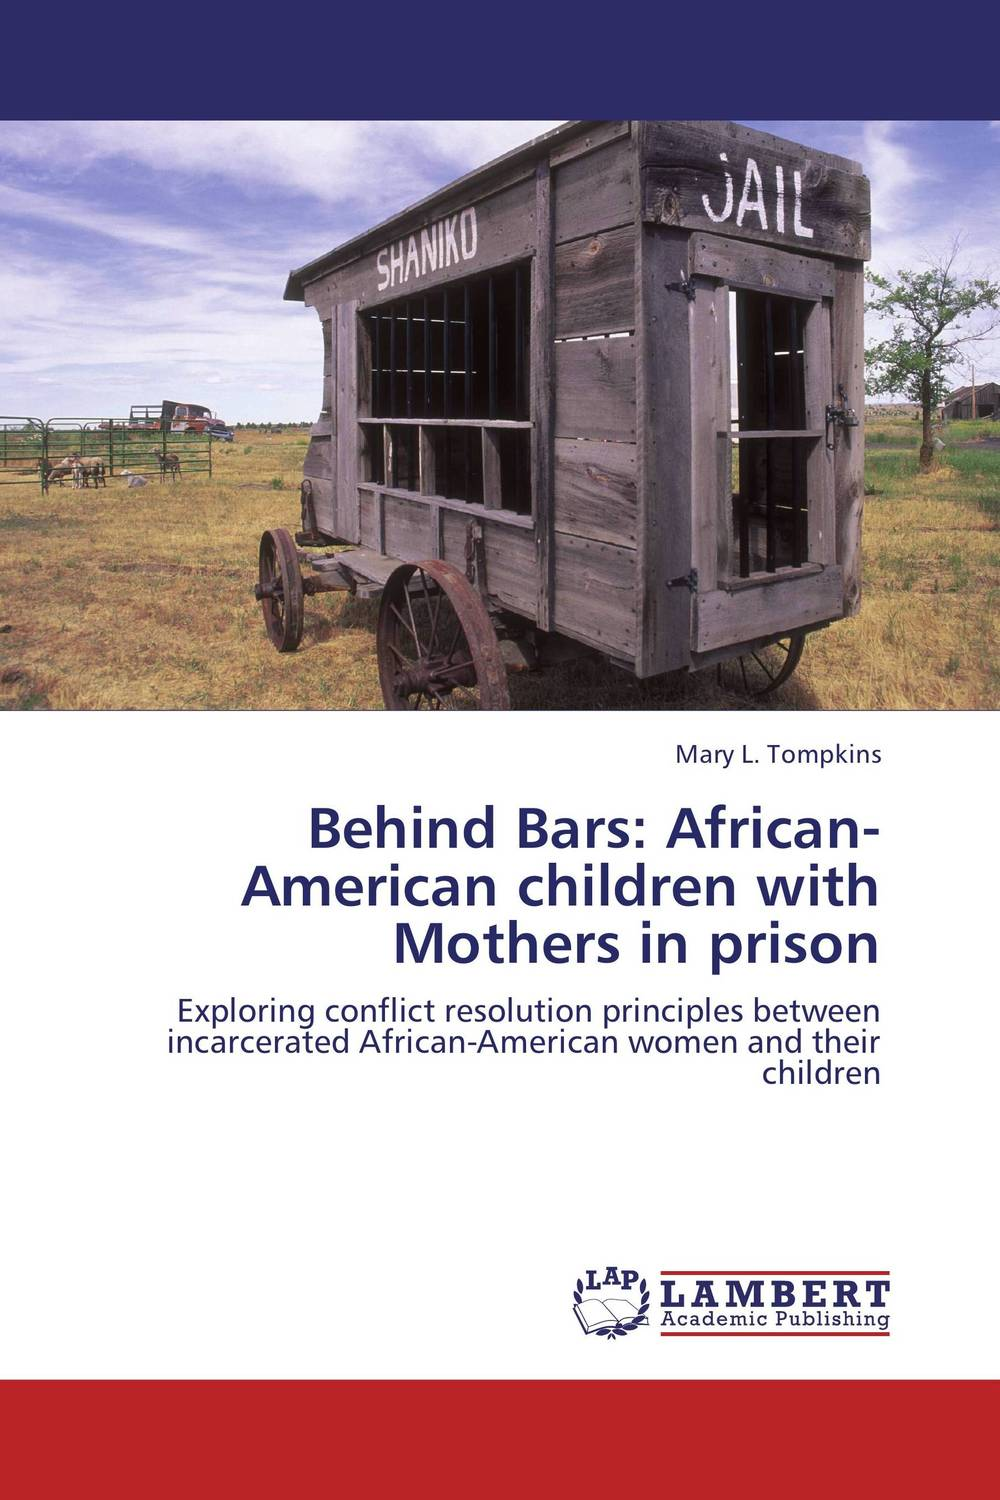 Behind Bars: African-American children with Mothers in prison ruth williams hooker barbara mullins nelson and pamela s hinds a new model for explaining obesity in african american women